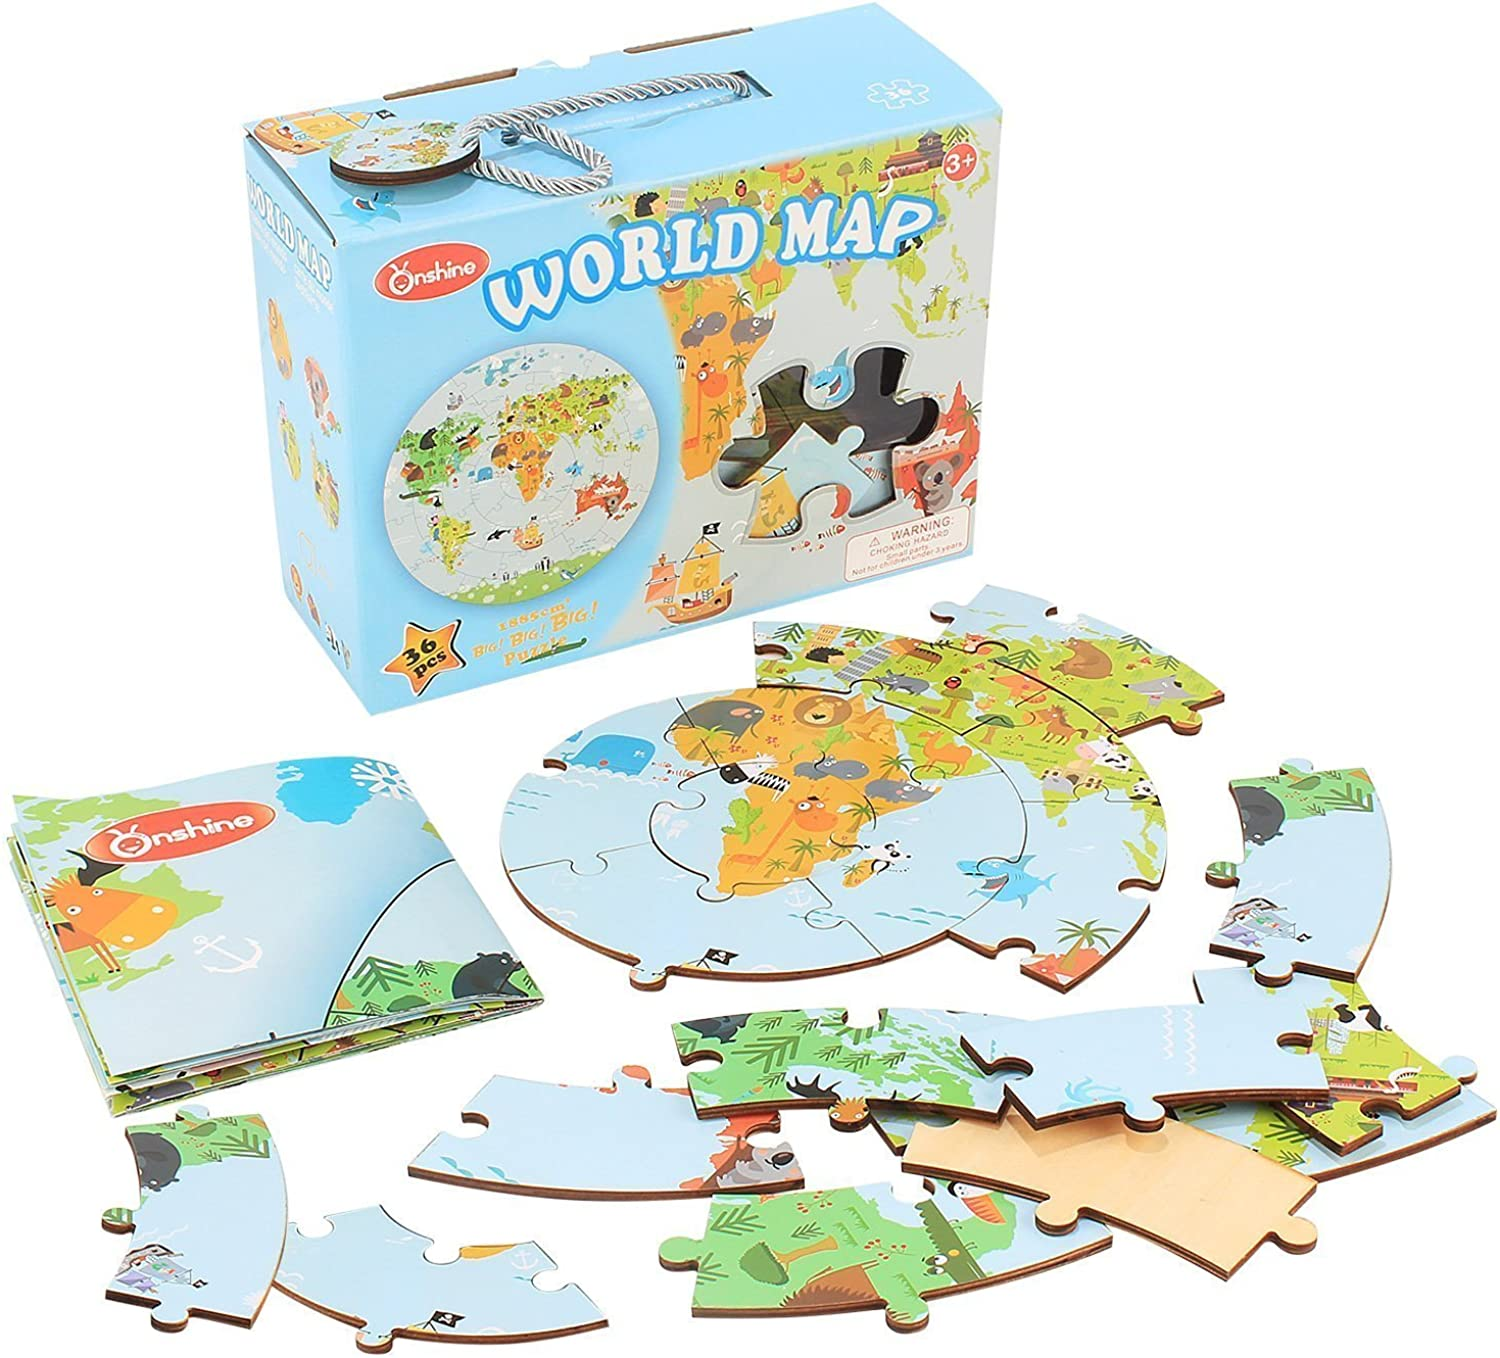 36 Pcs World Map Universe Wooden Puzzle Toy Educational Geography Floor Brick for Kids